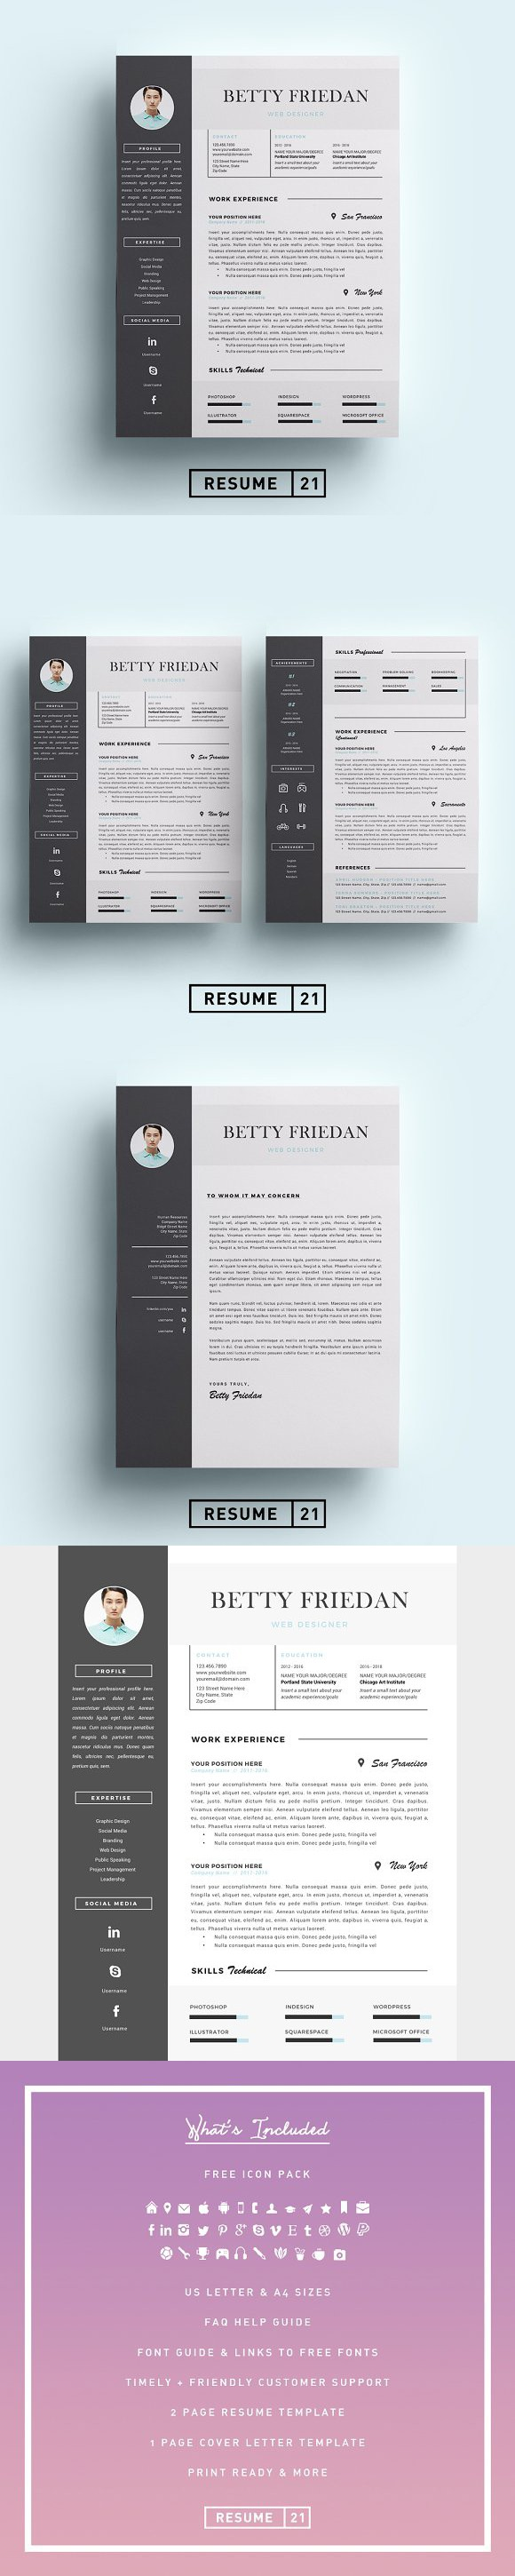 Web Designer Resume Template CV Nursing Resume